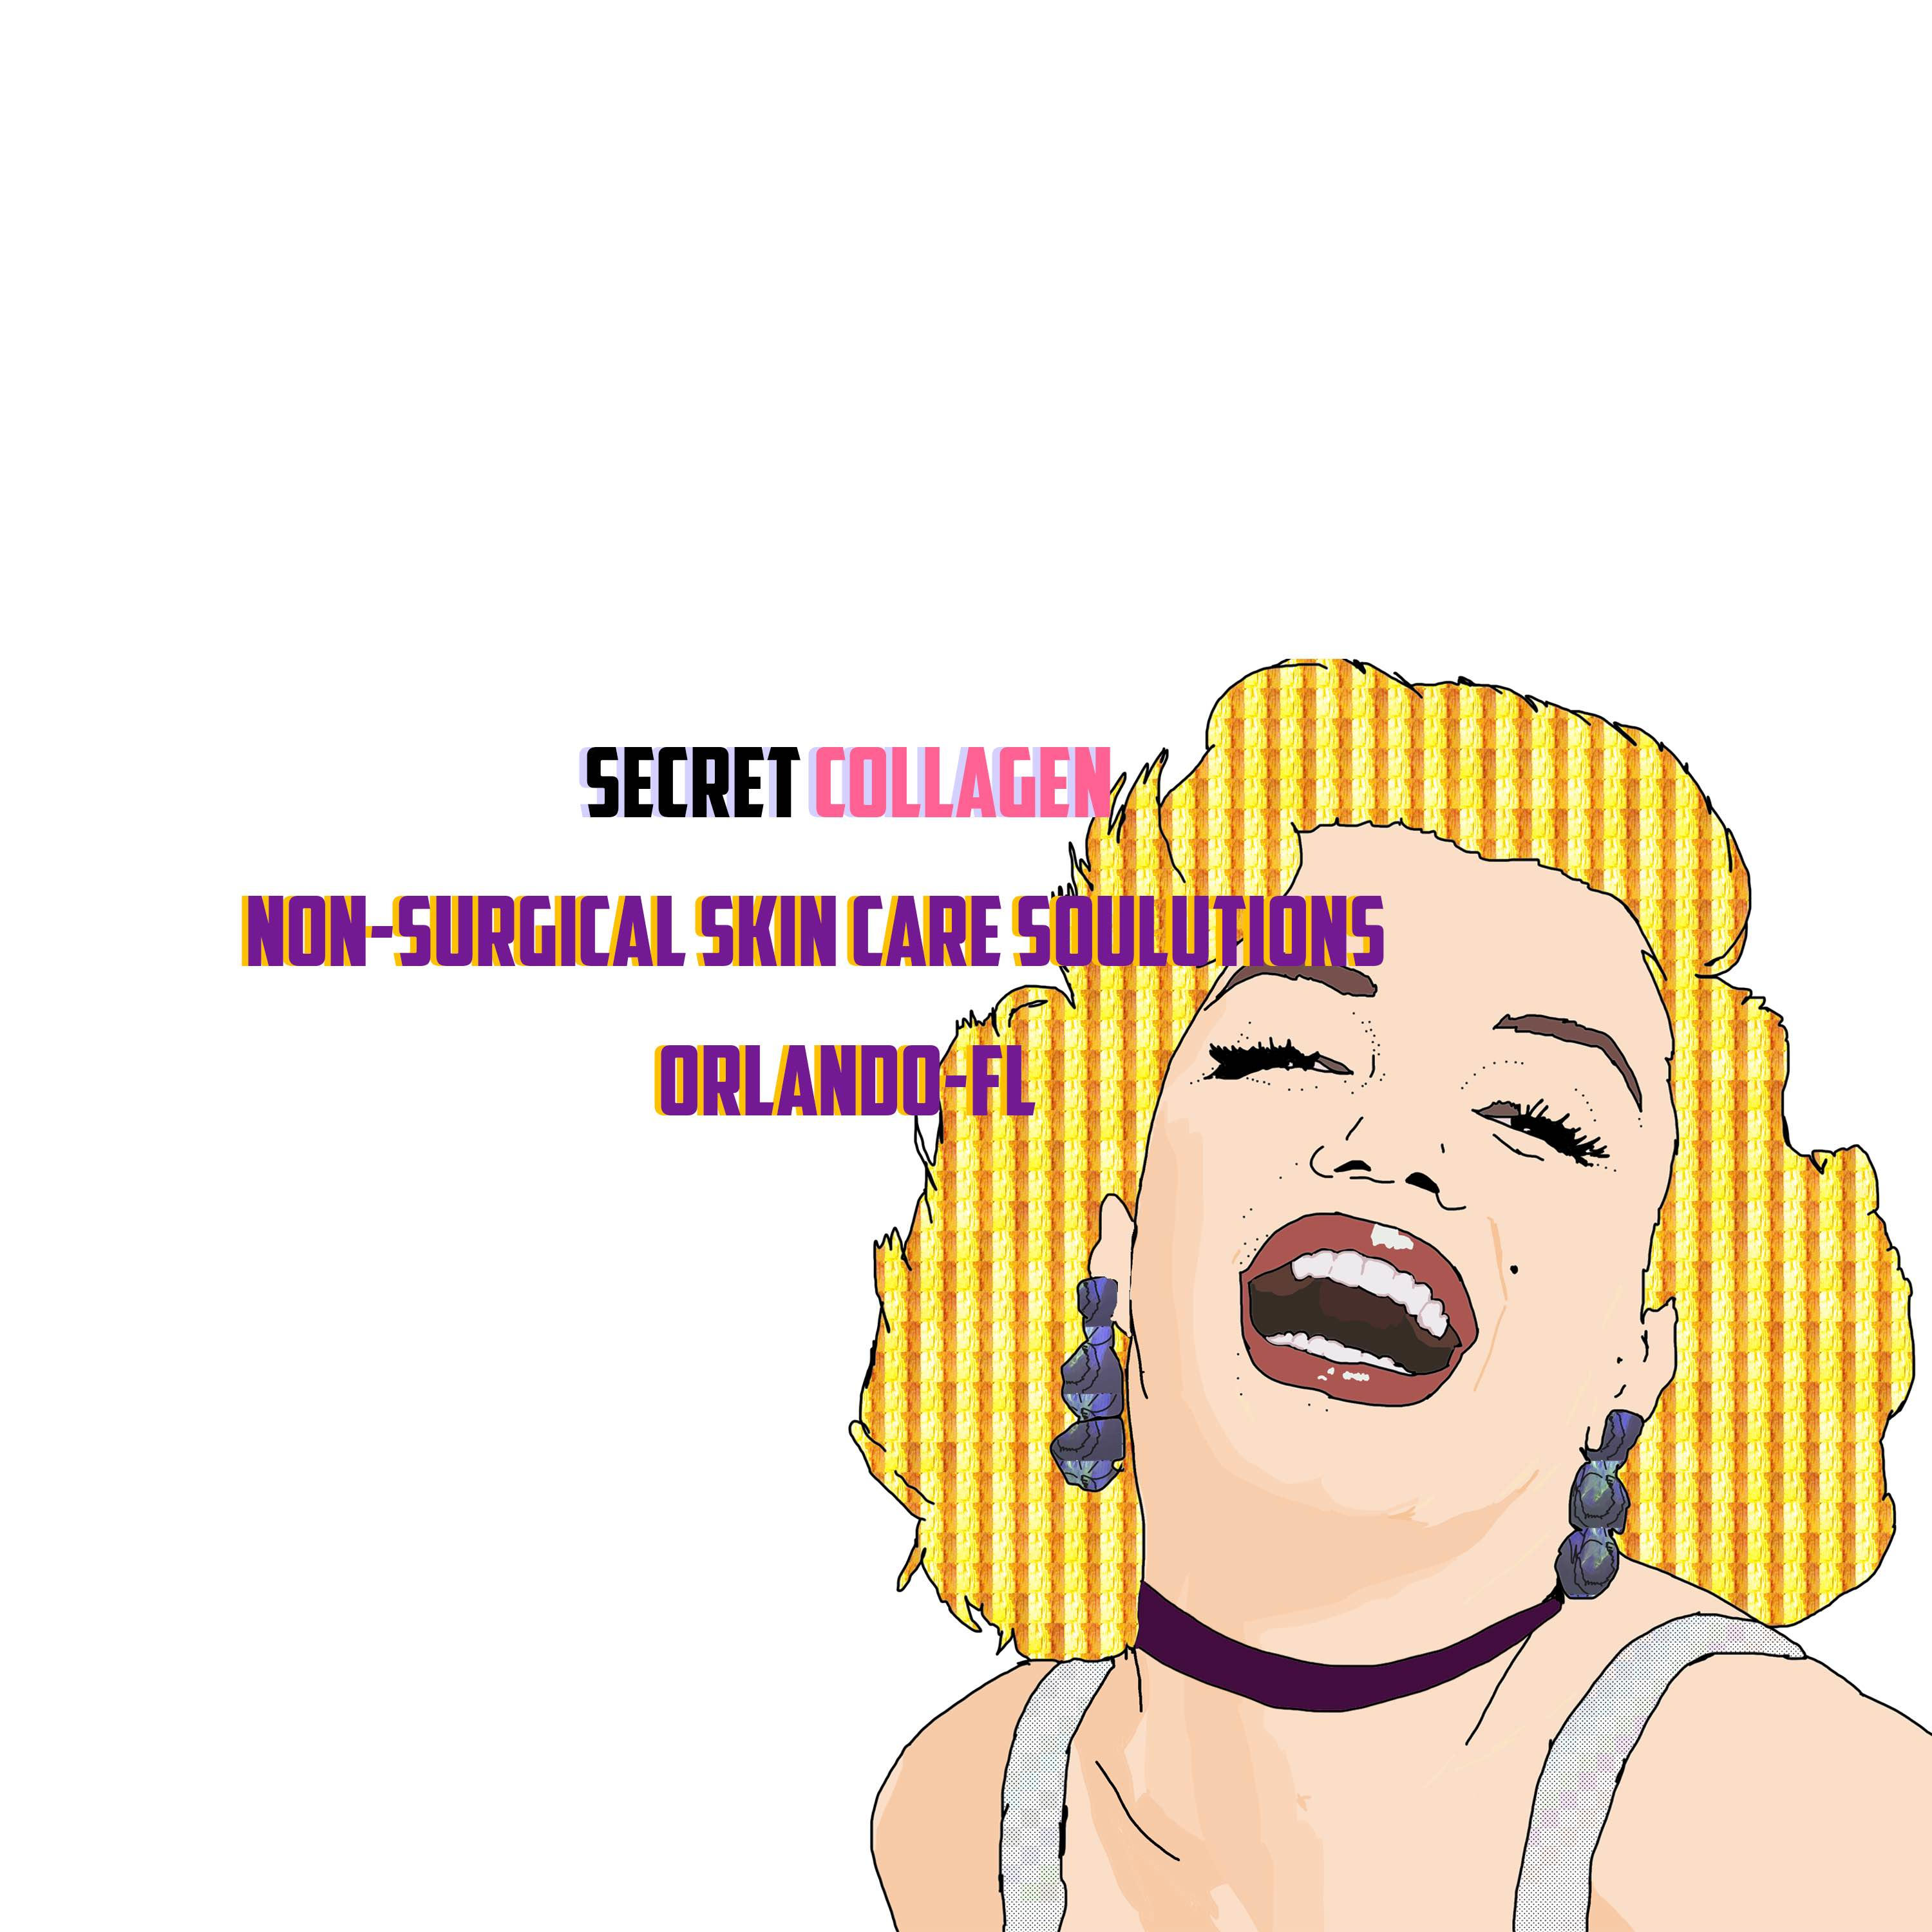 Secret Collagen Orlando